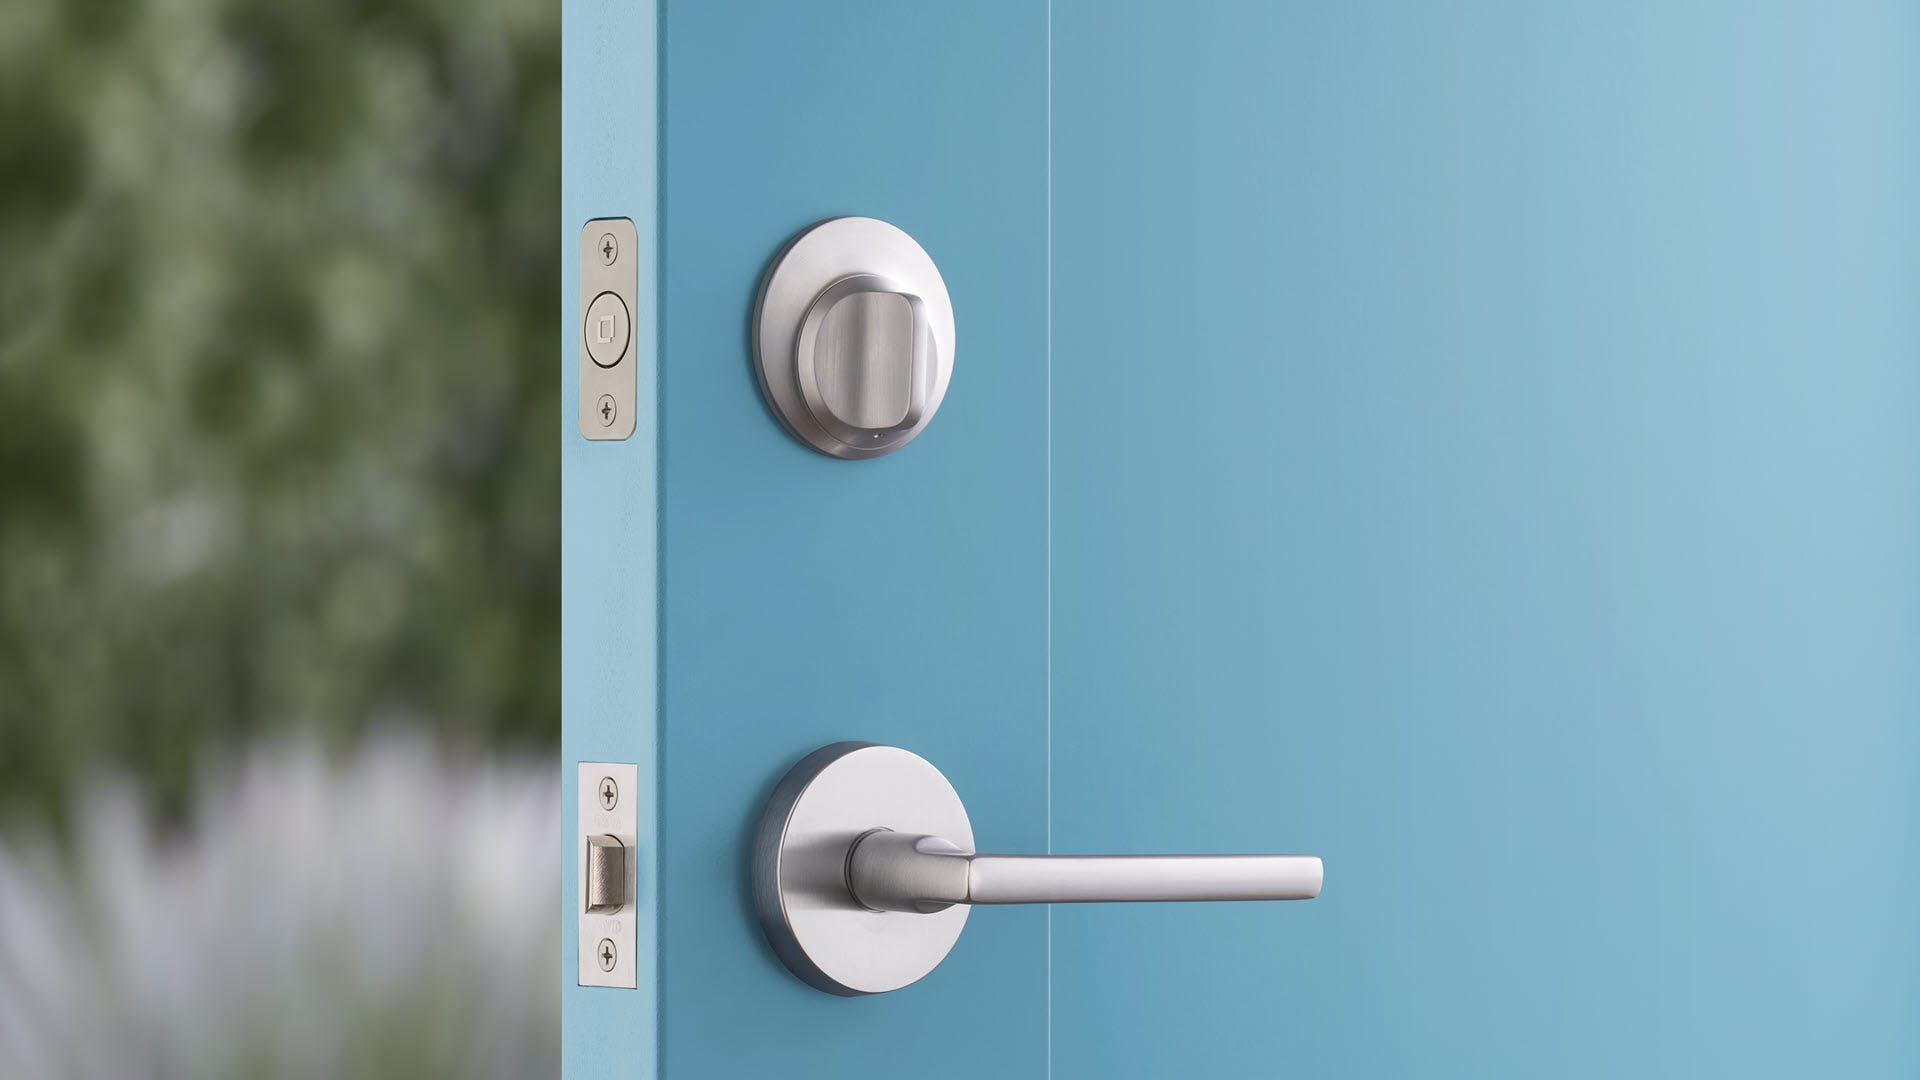 A smart lock that looks identical to a dumb lock---from the outside of the door.